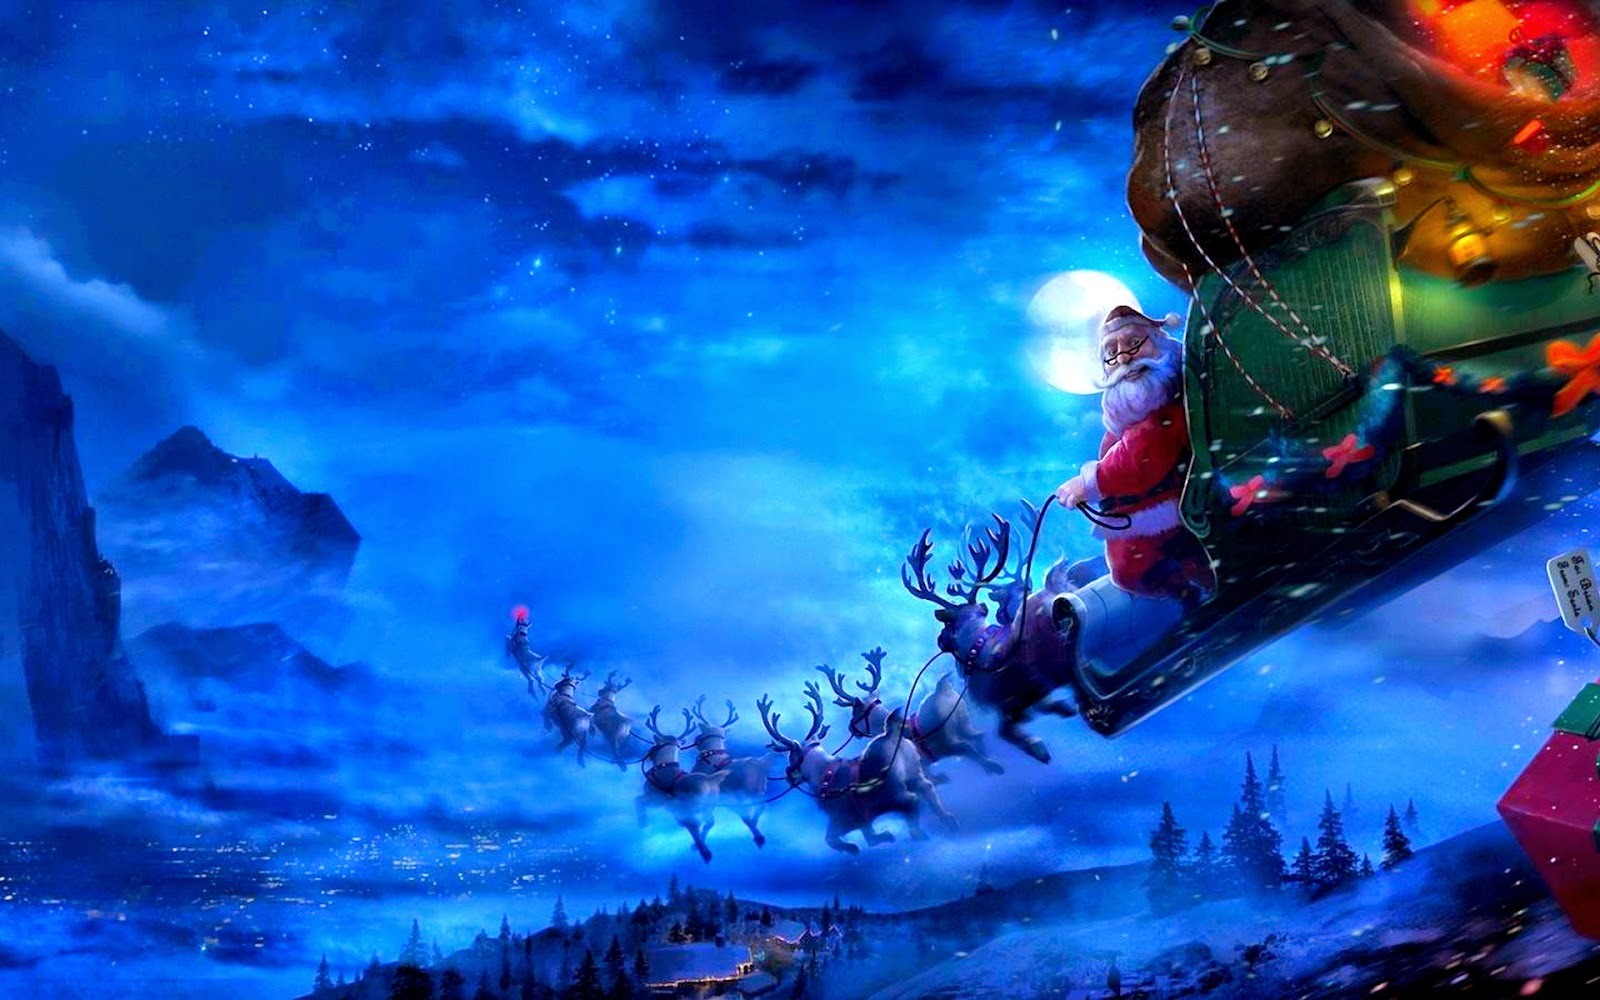 santa-claus-riding-his-sleigh-reindeer-at-night-in-sky-HD-wallpaper-1920x1200.jpg